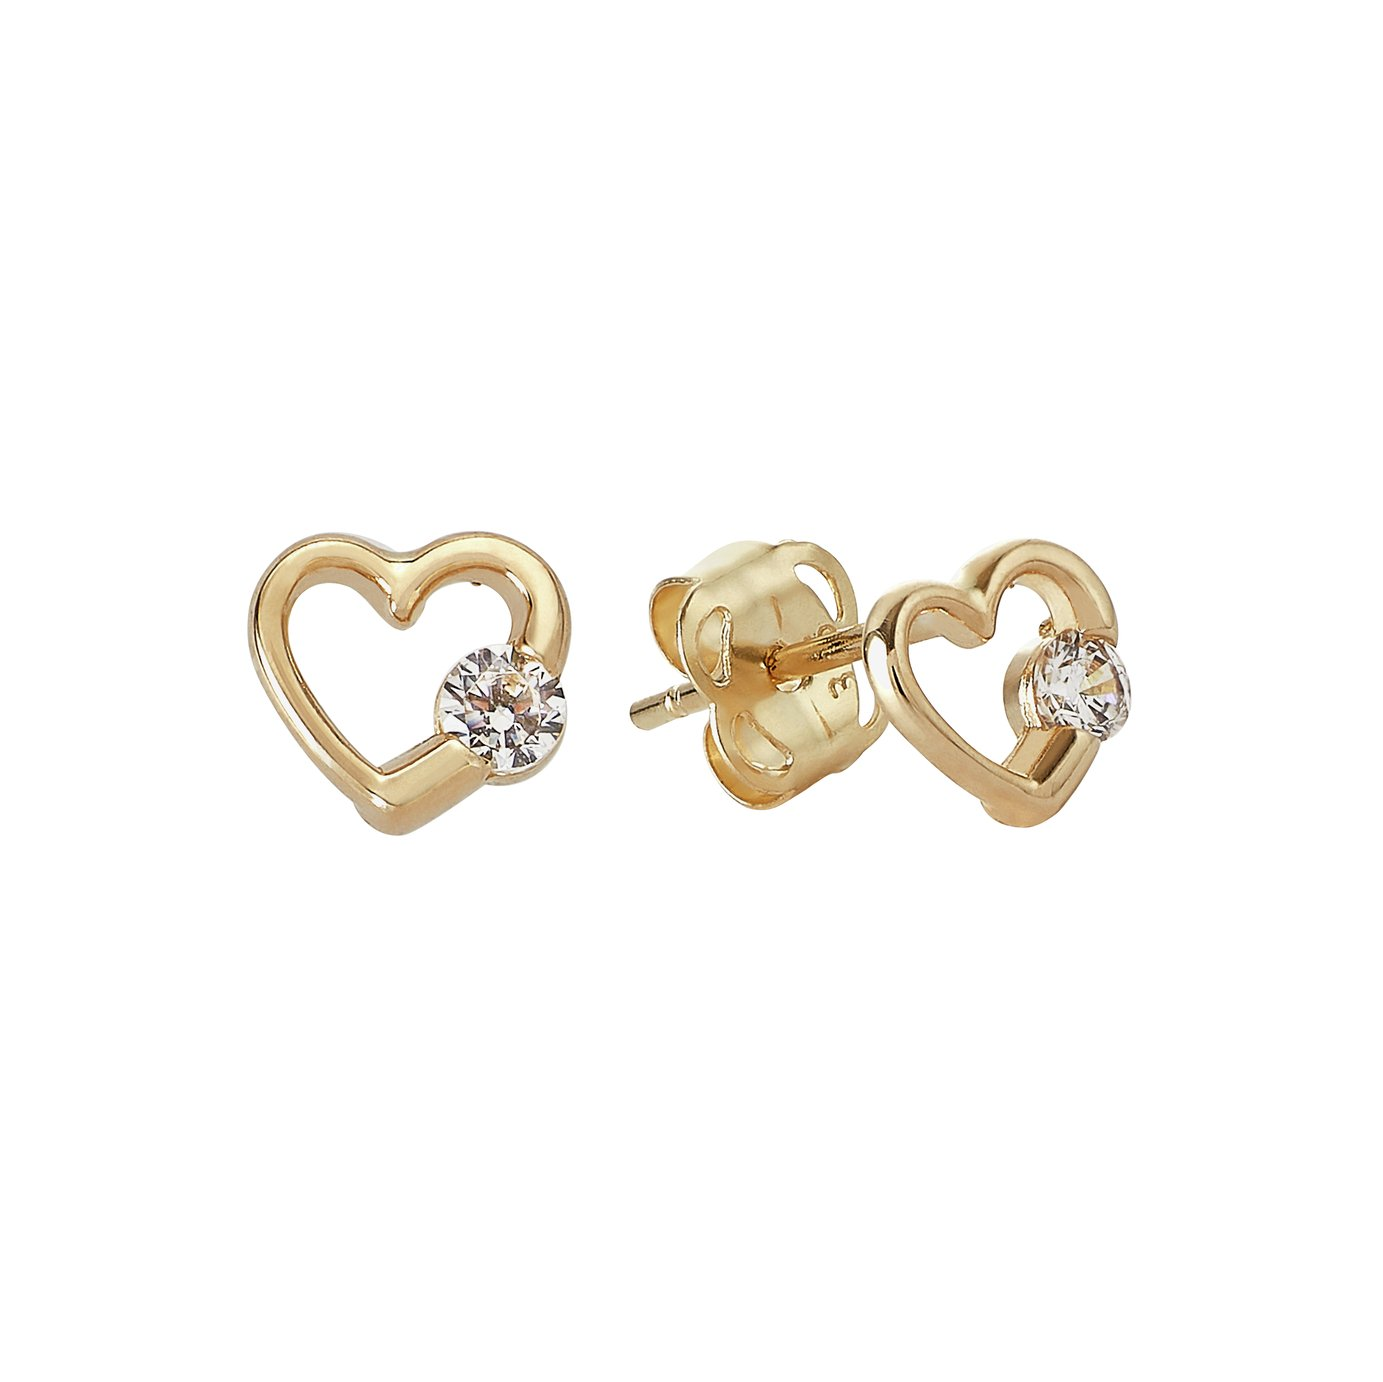 Revere Kid's 9ct Yellow Gold CZ Heart Stud Earrings